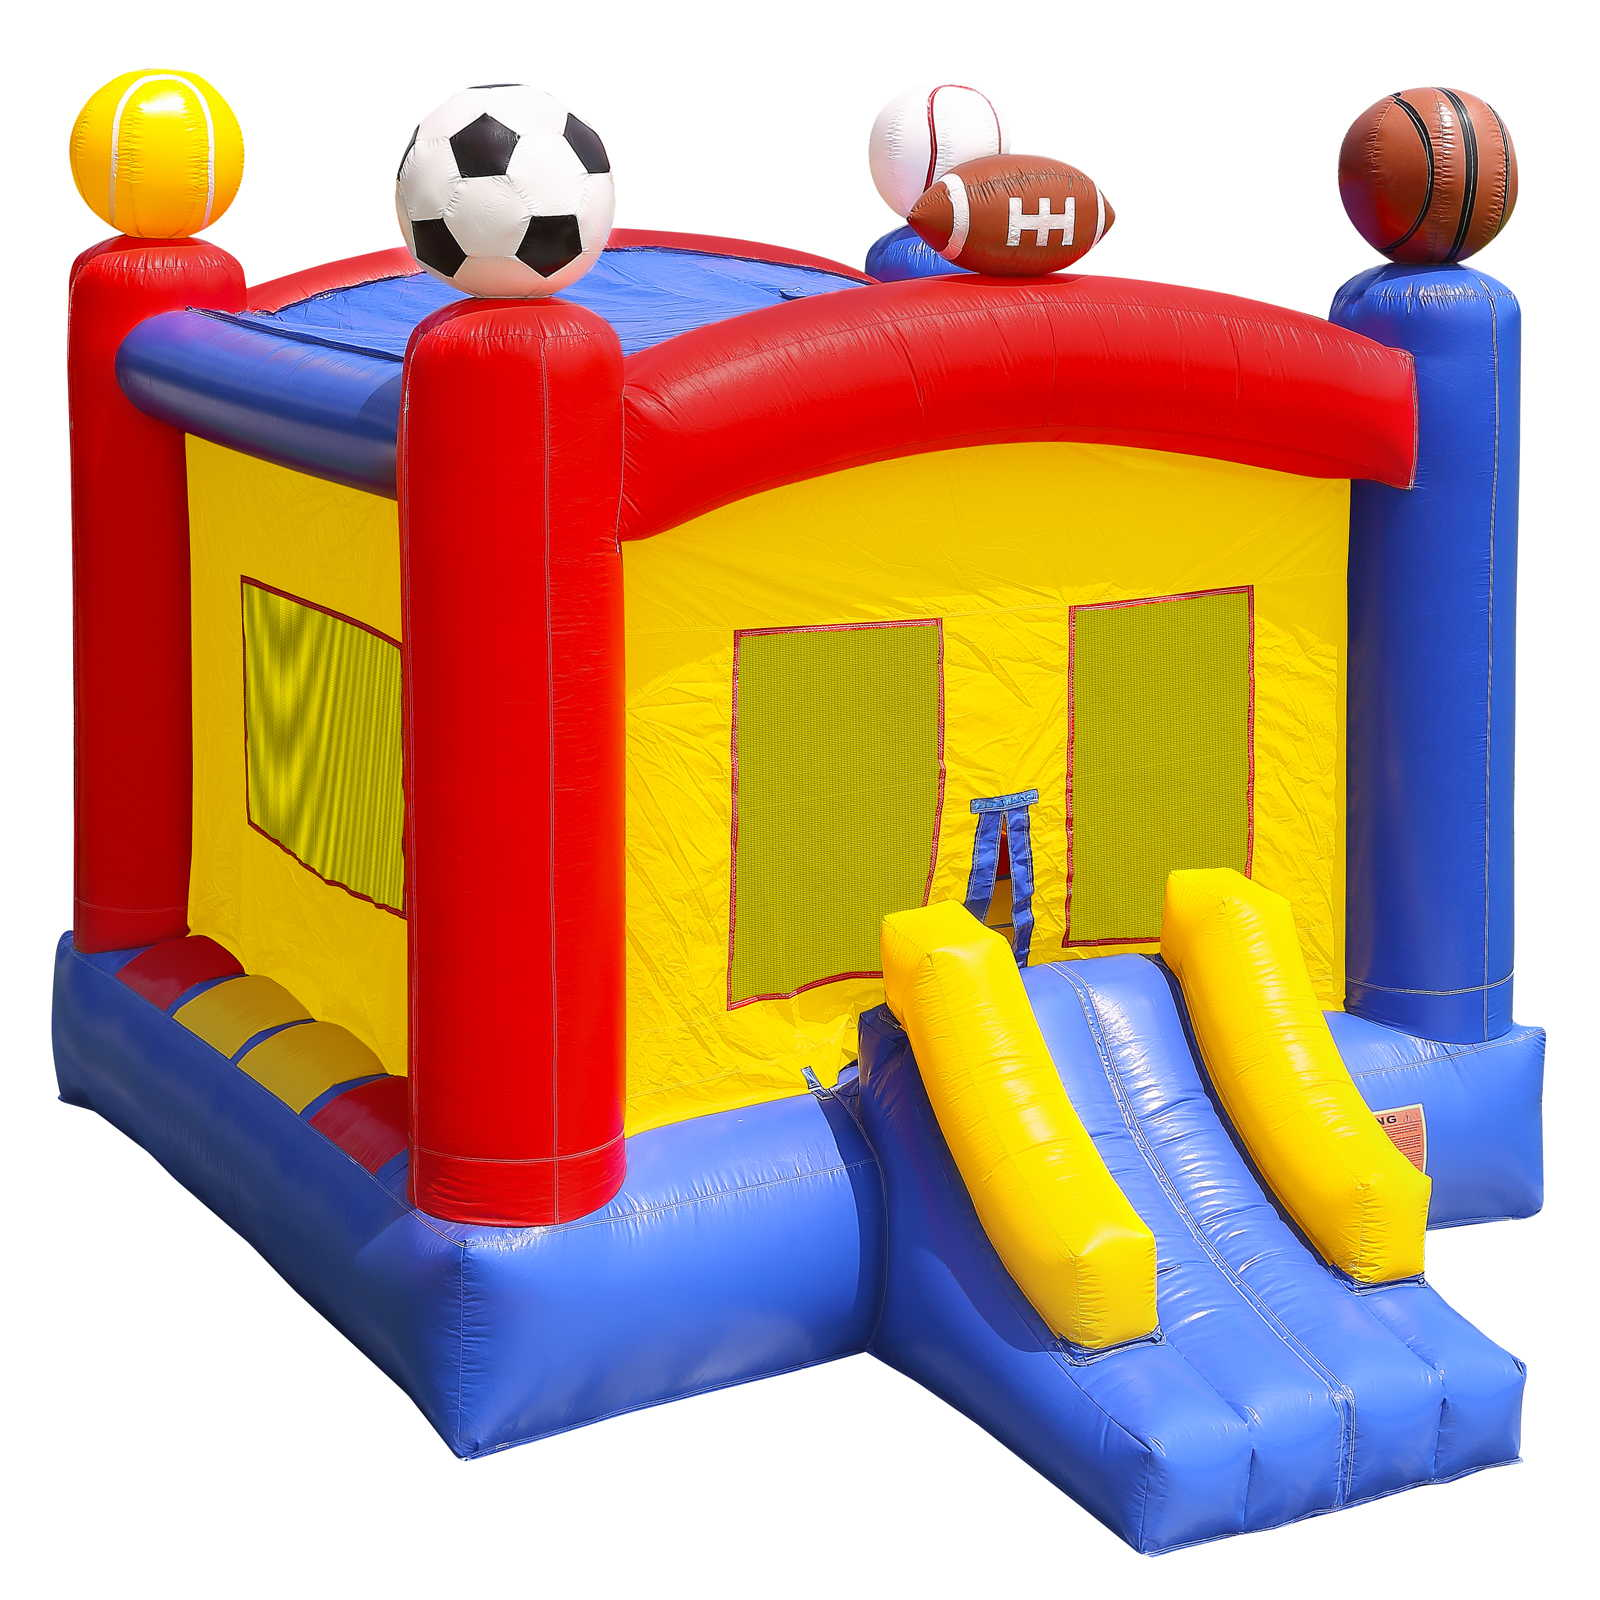 Inflatable HQ Commercial Grade Sports Bounce House 100% PVC with Blower